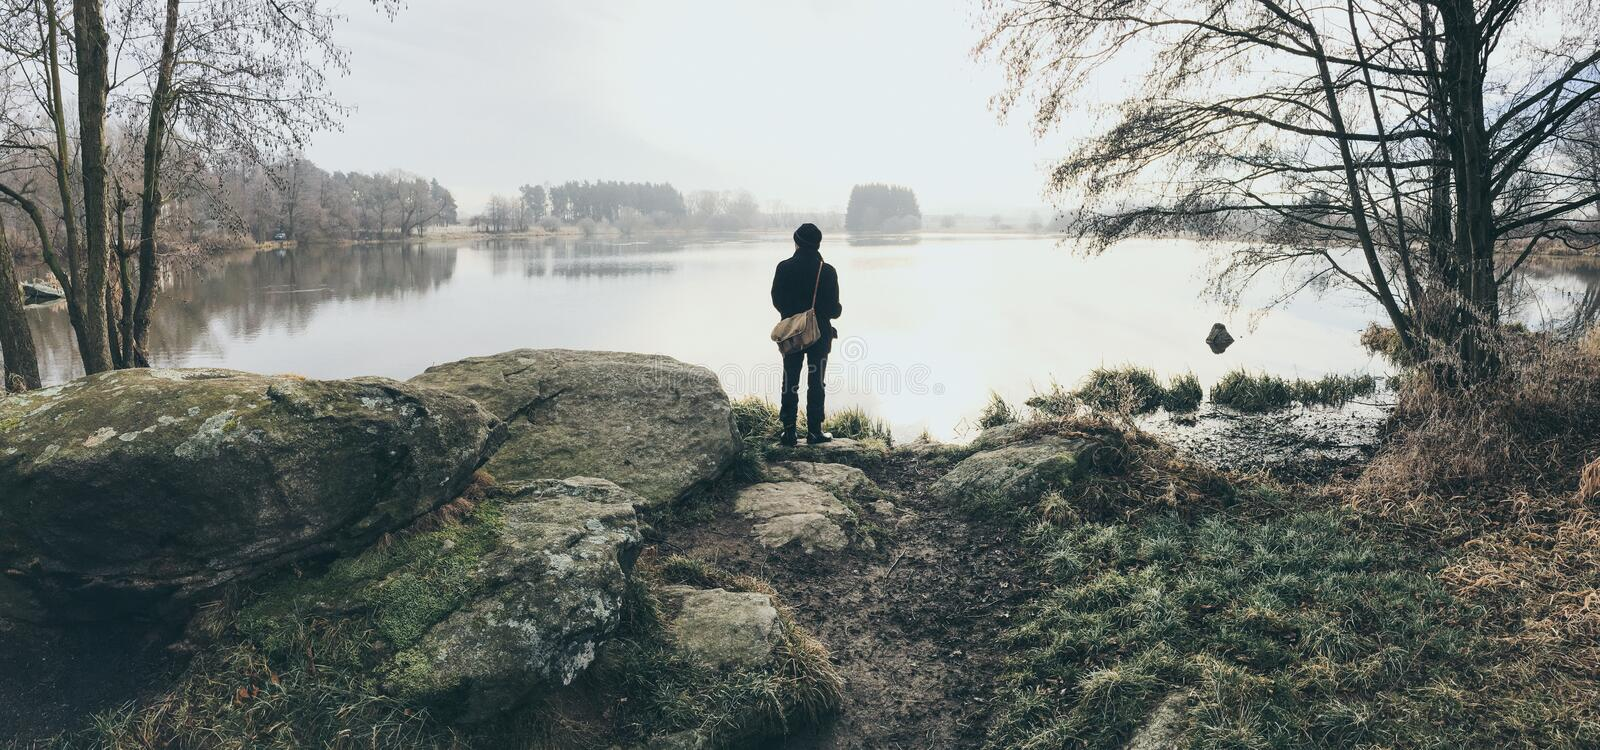 Fishing in Sumava National Park II stock images